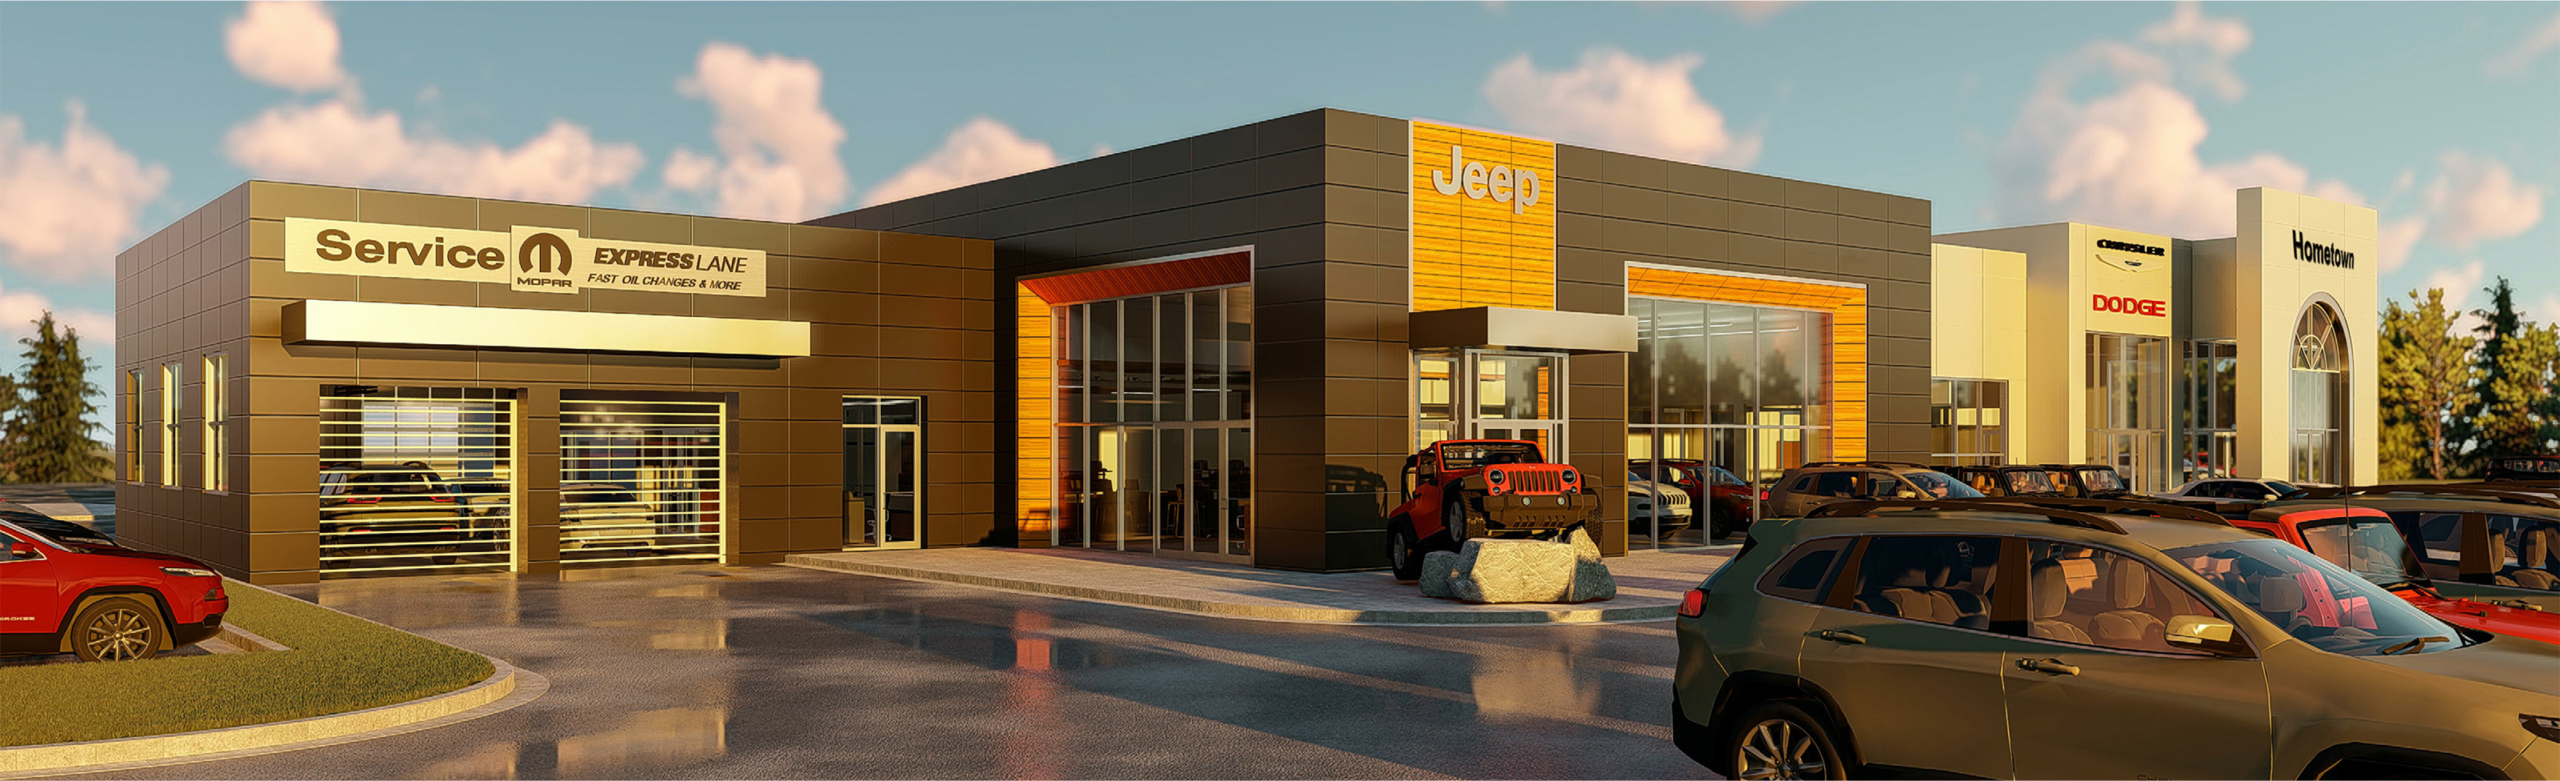 rendering of exterior of Lakeshore Kenner DCR+J Dealership | DonahueFavret General Contractors | Louisiana and Gulf South